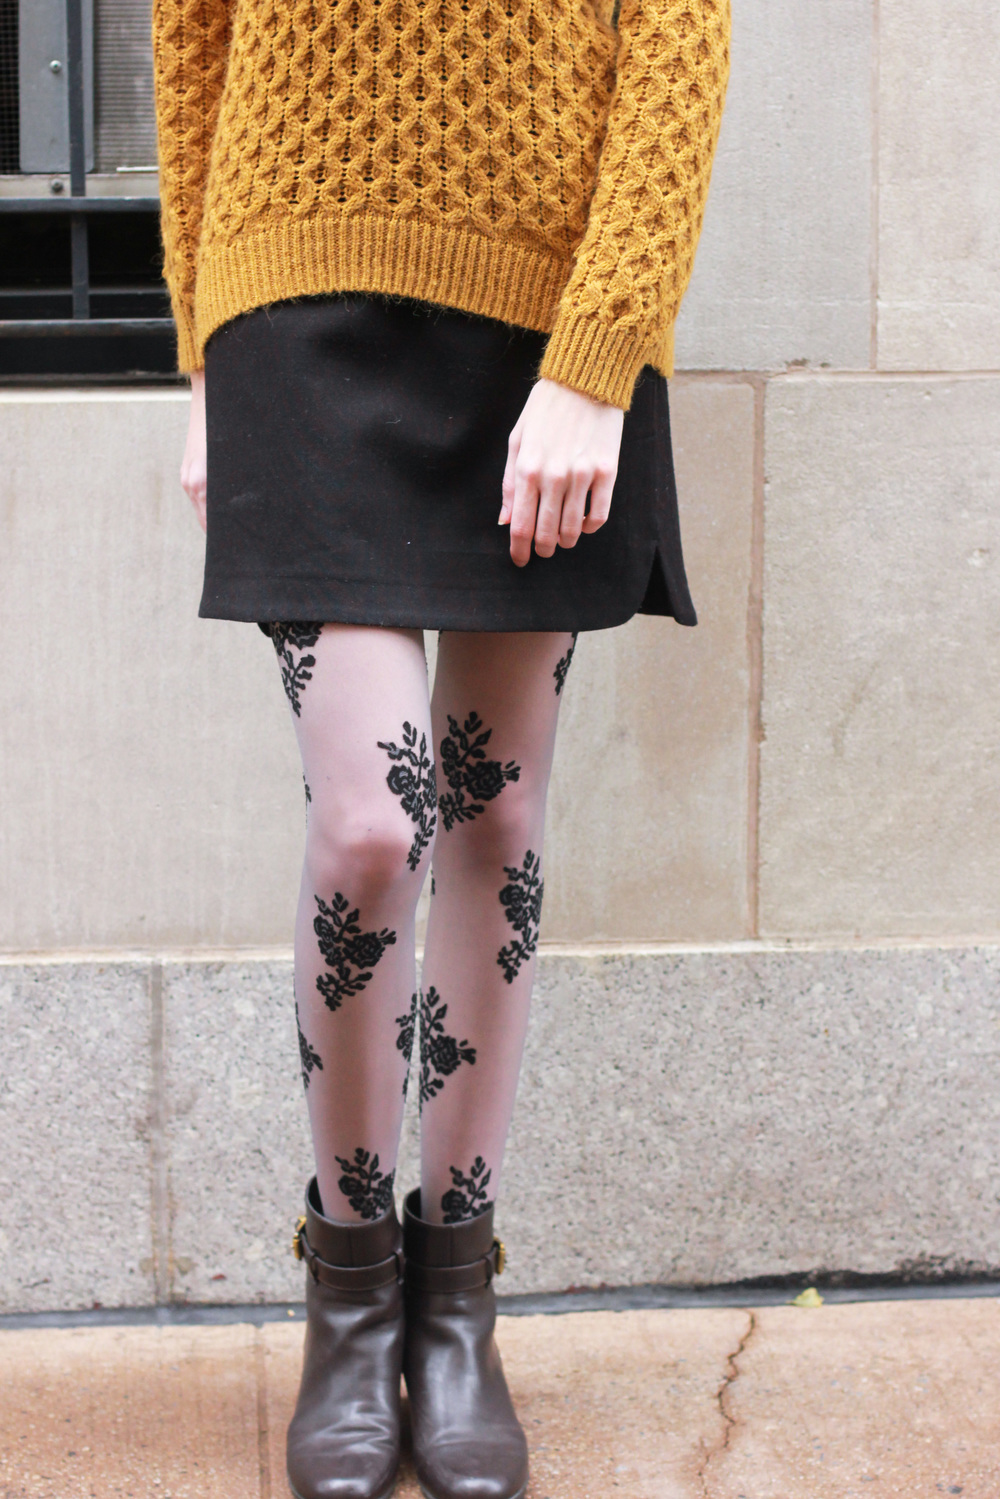 H&M mustard knit sweater, LOFT a-line black skirt, Forever21 lace floral tights, brown leather booties, Henri Bendel leather headband